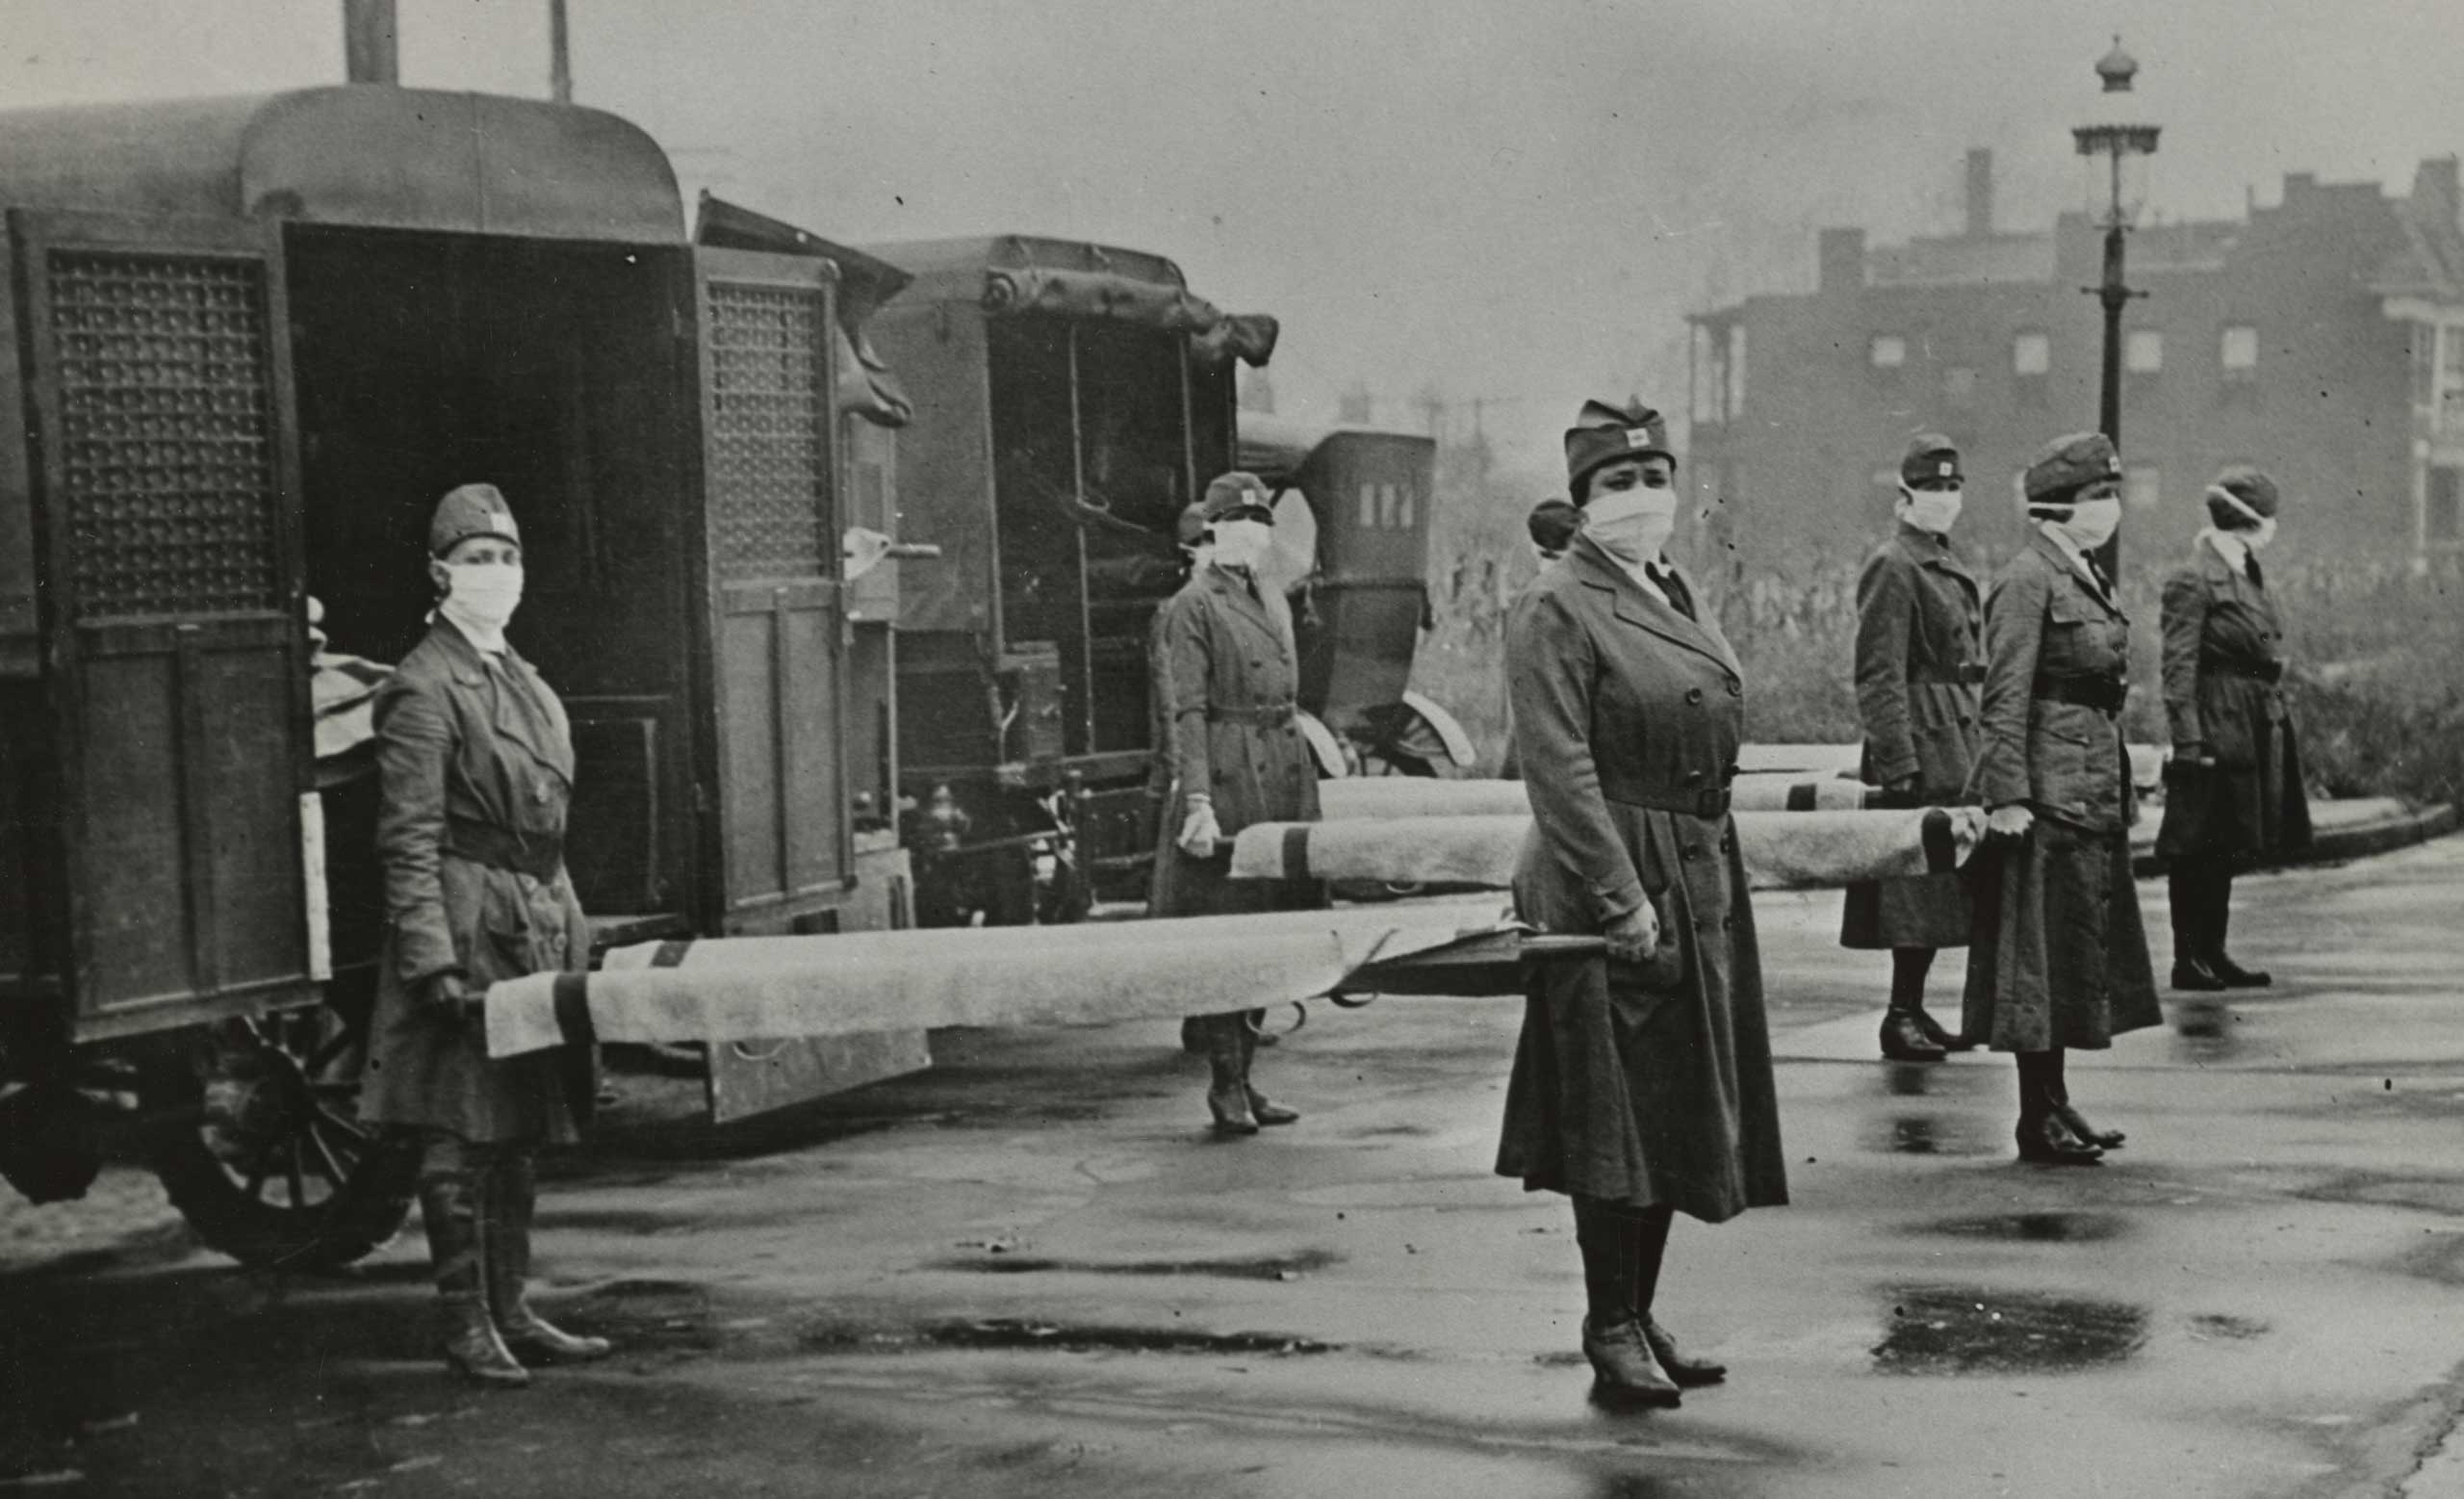 St. Louis Red Cross Motor Corps on duty during the influenza pandemic, 1918.